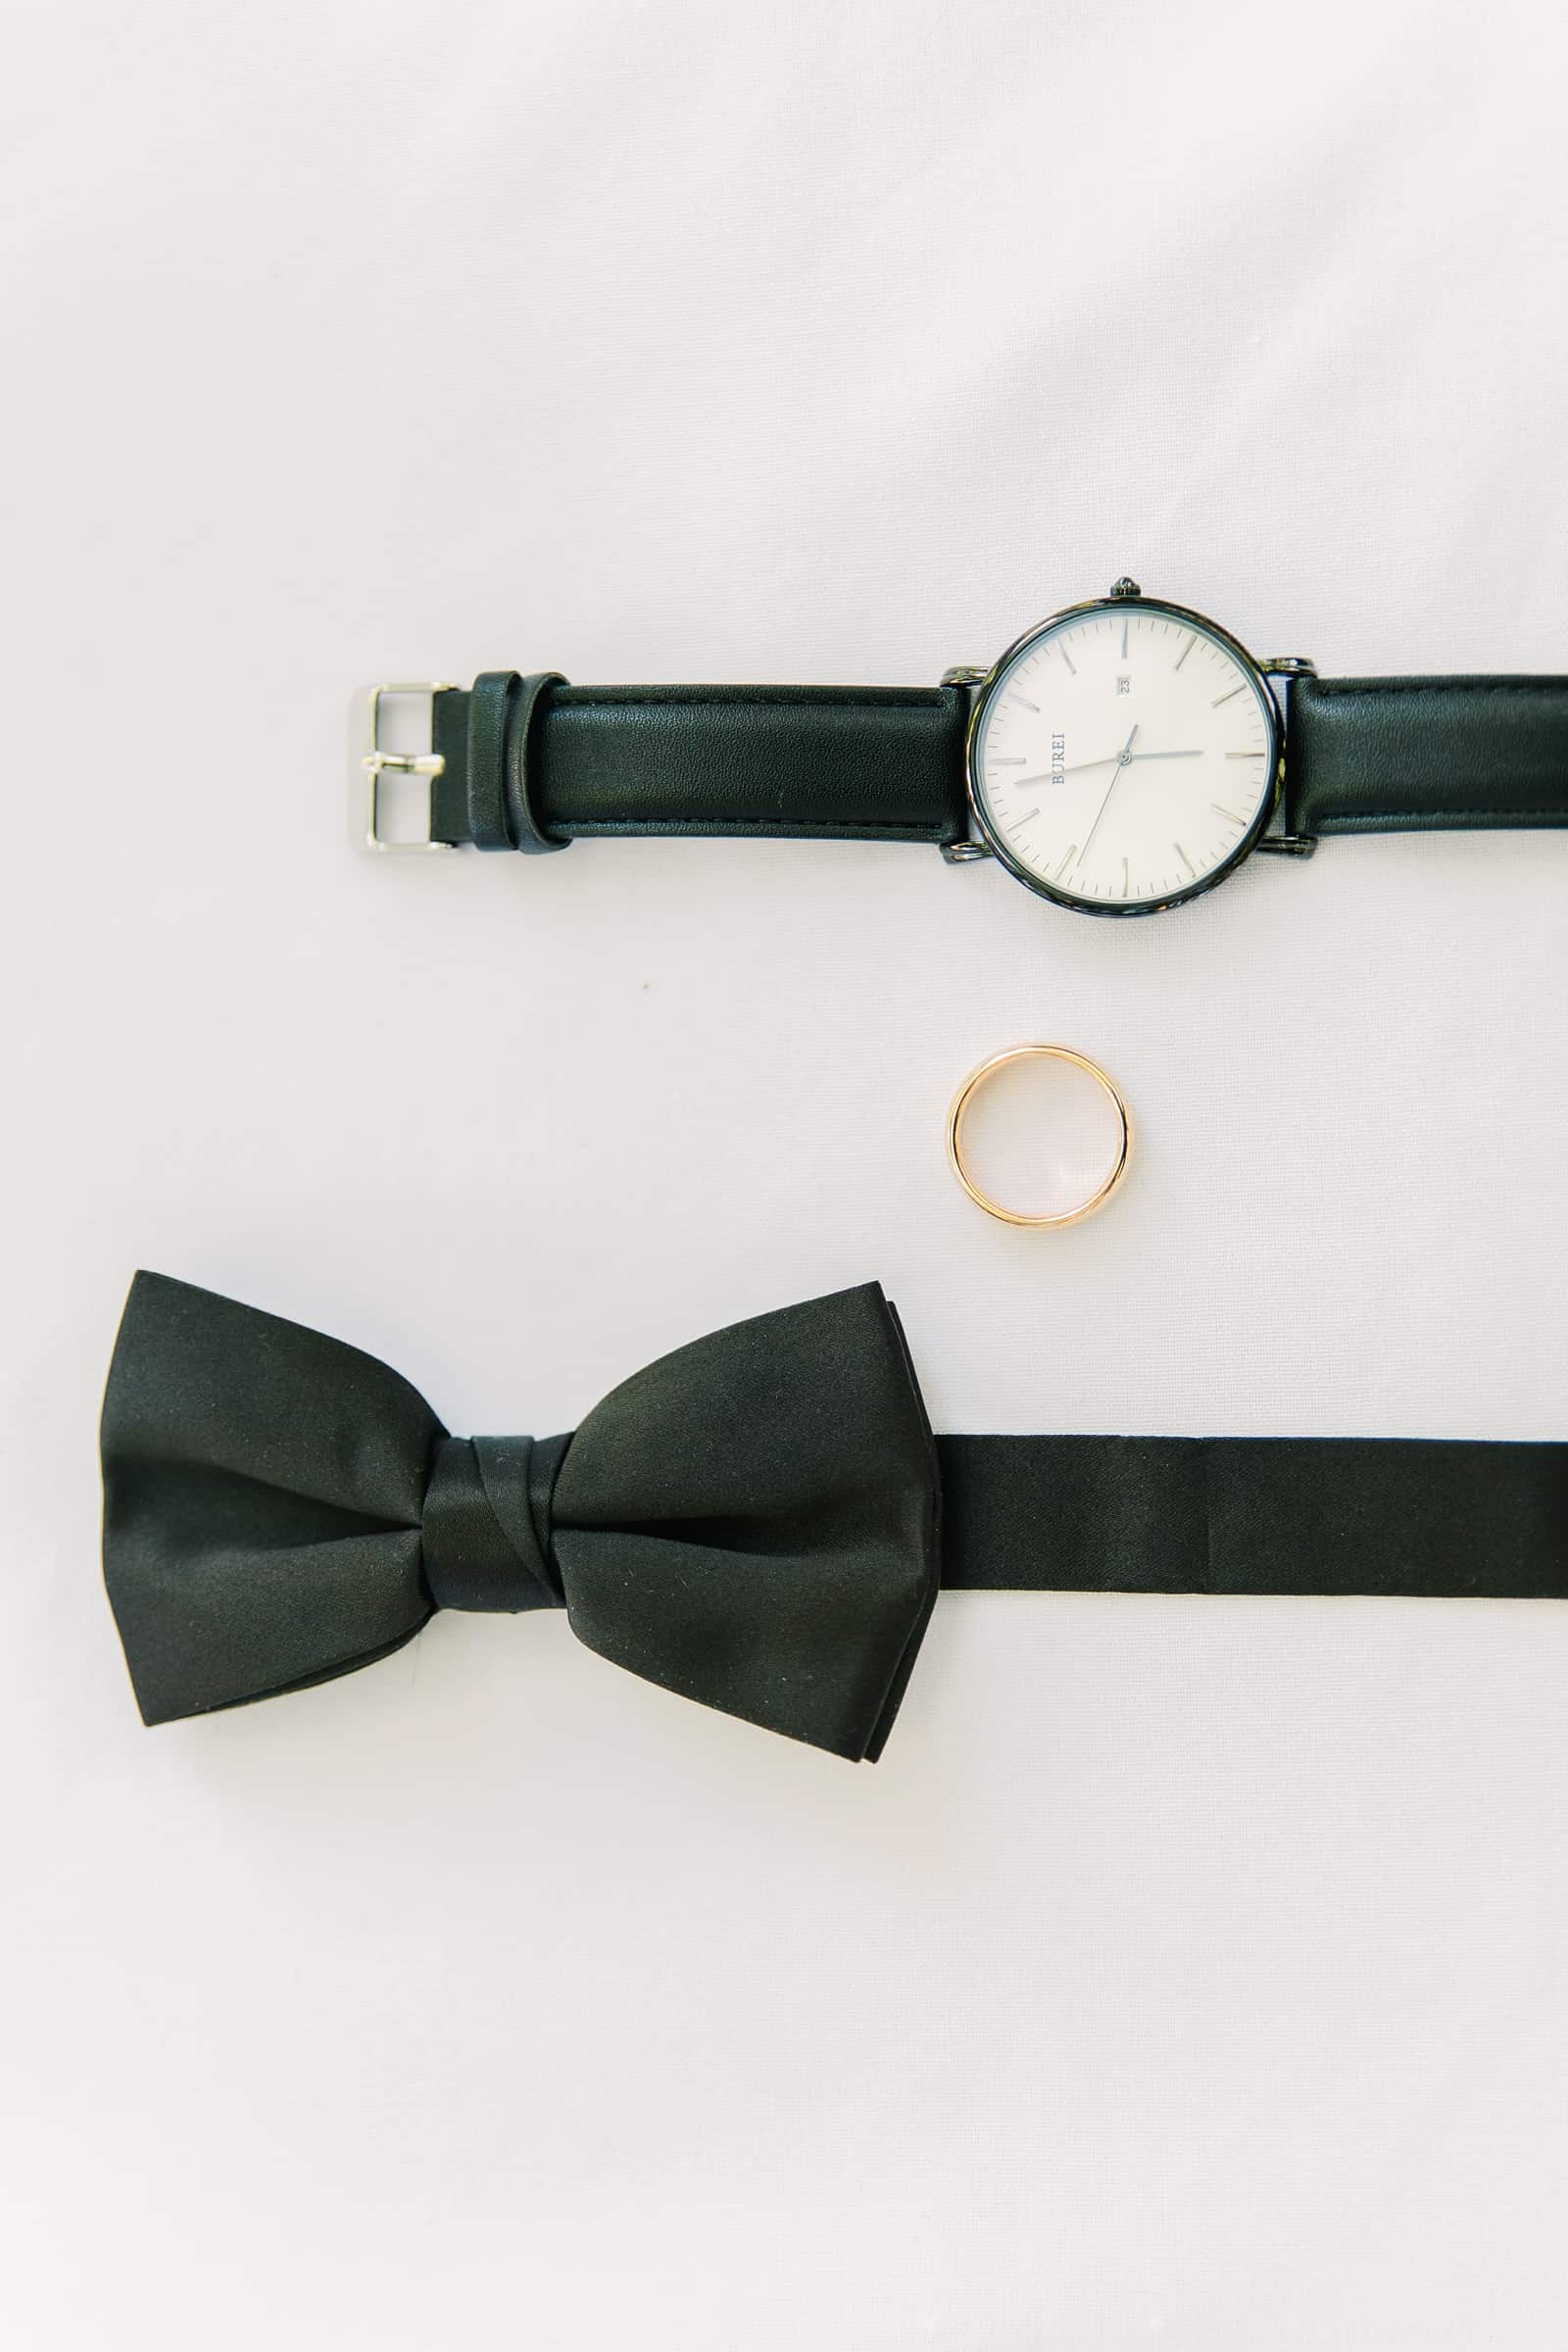 Classic black Utah wedding details, groom black bow tie and watch with gold wedding ring